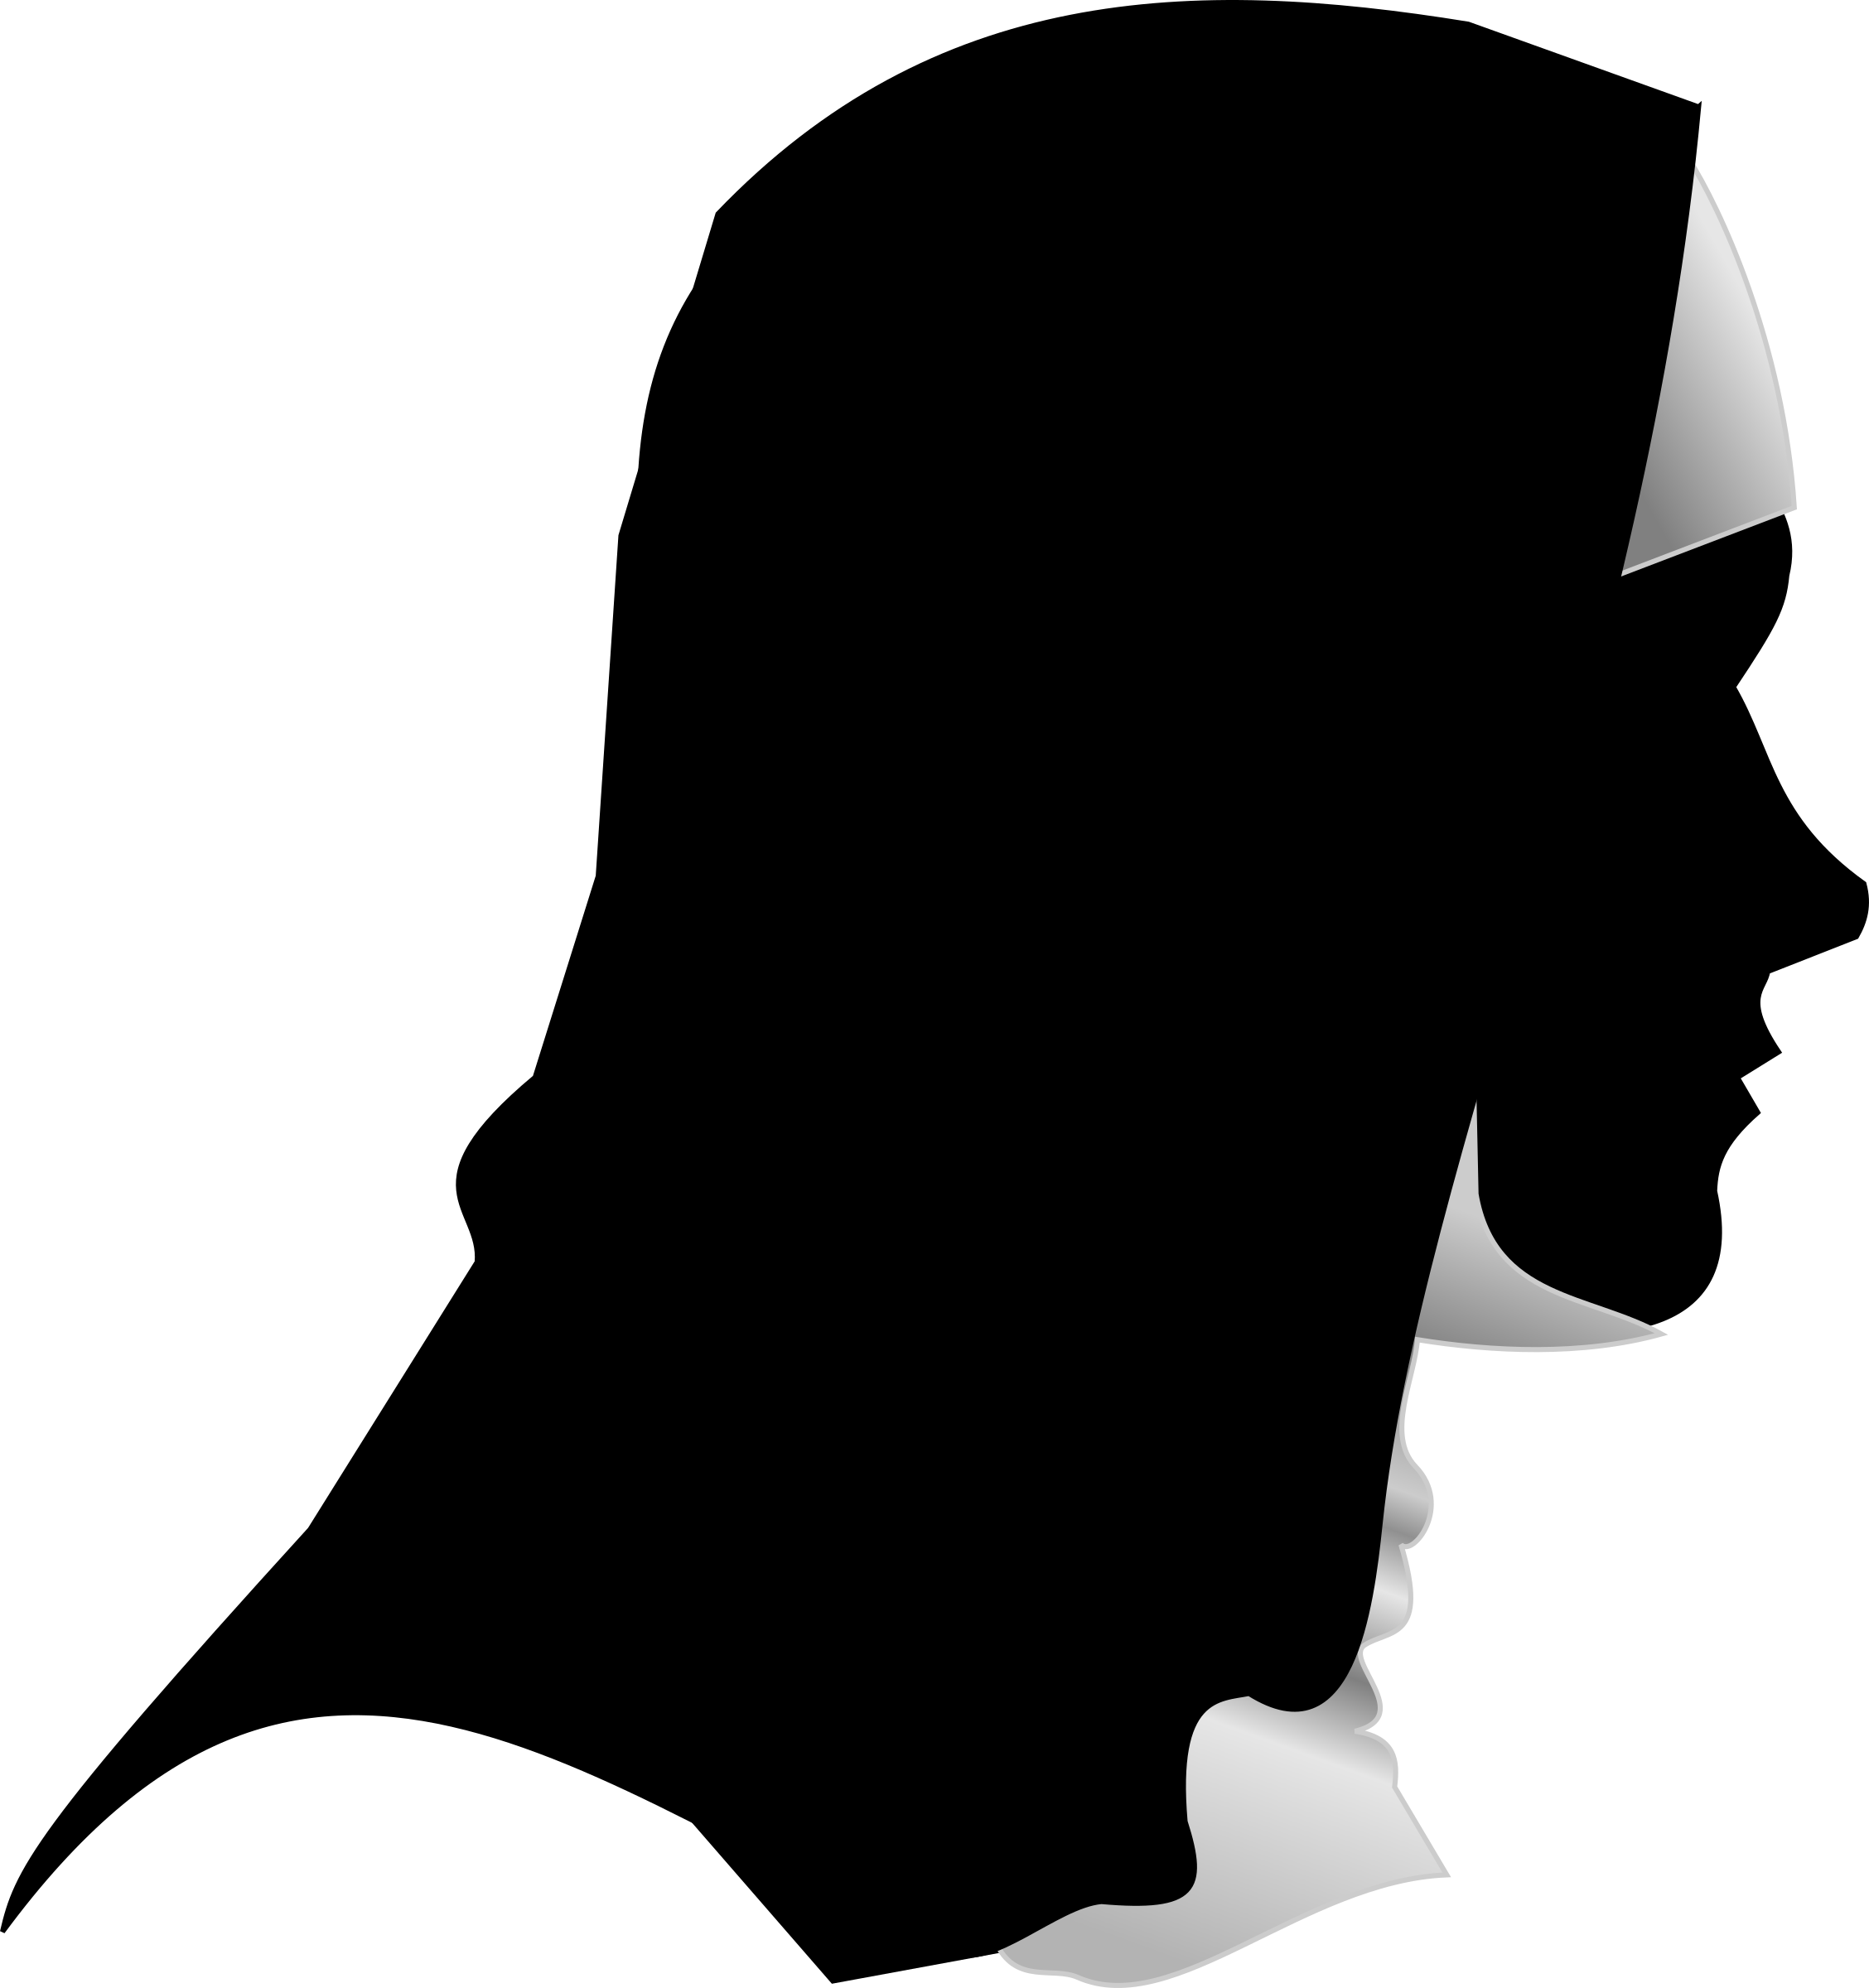 Catholic Nun Silhouette Profile by studio_hades